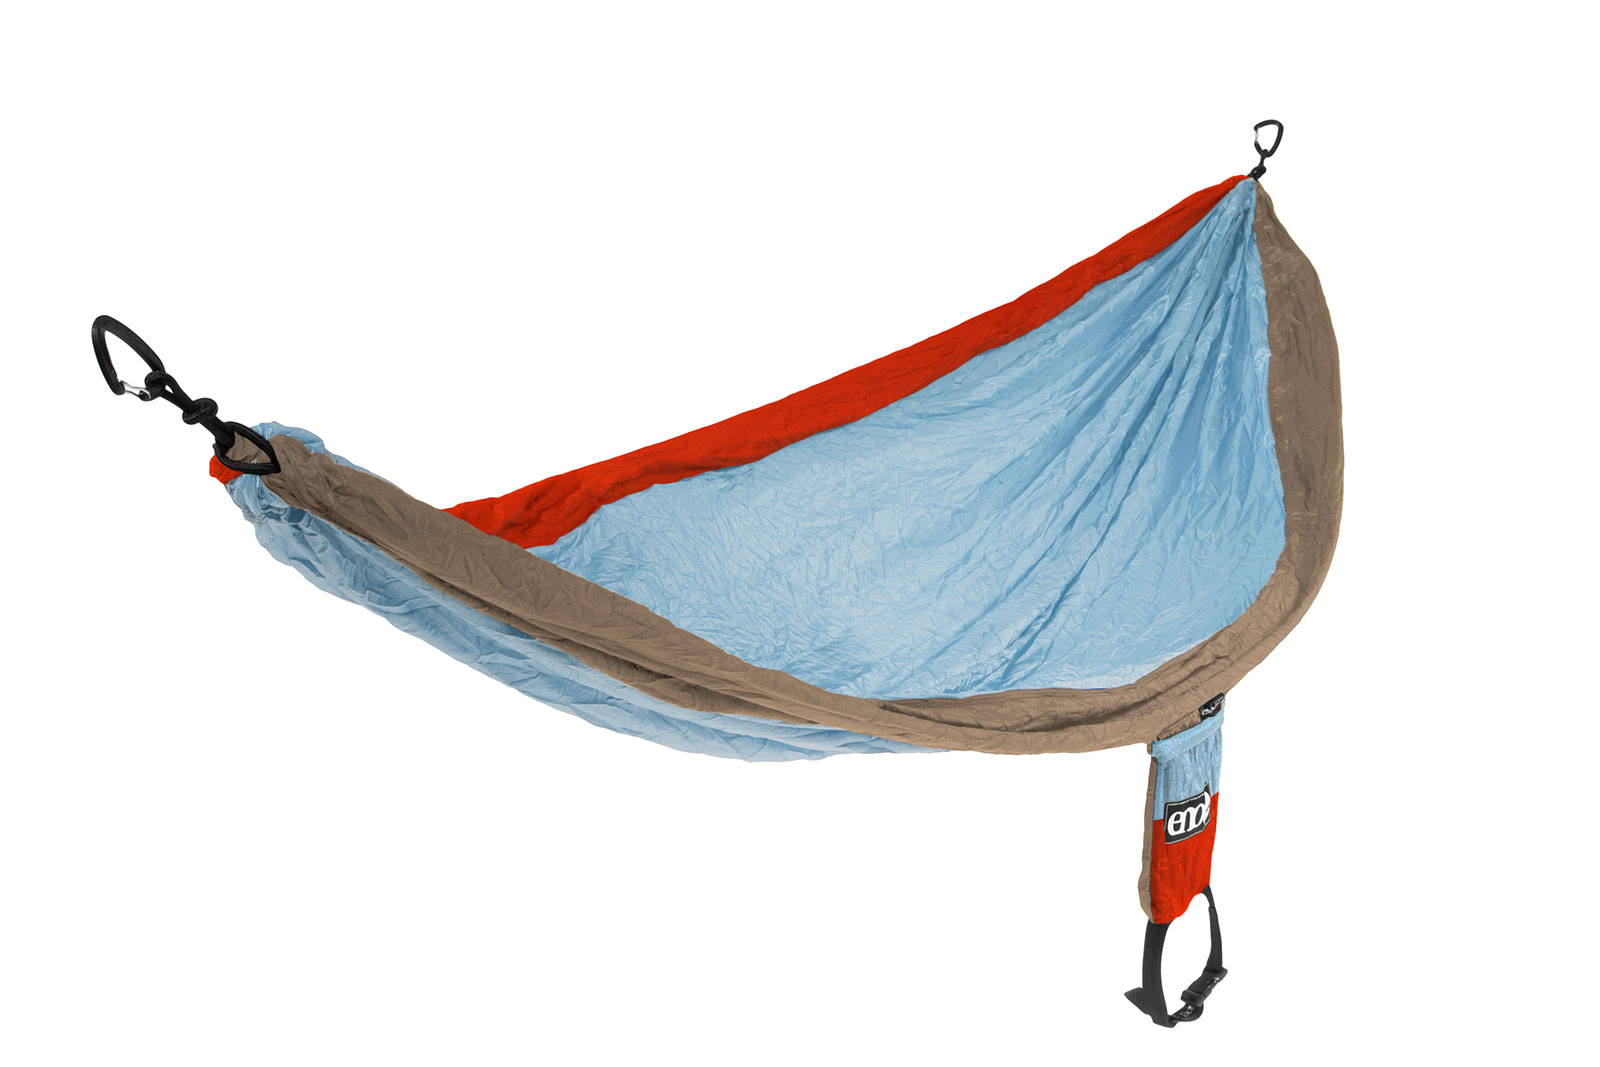 Eno Singlenest Hammock Outdoor Camping Backpacking Nylon